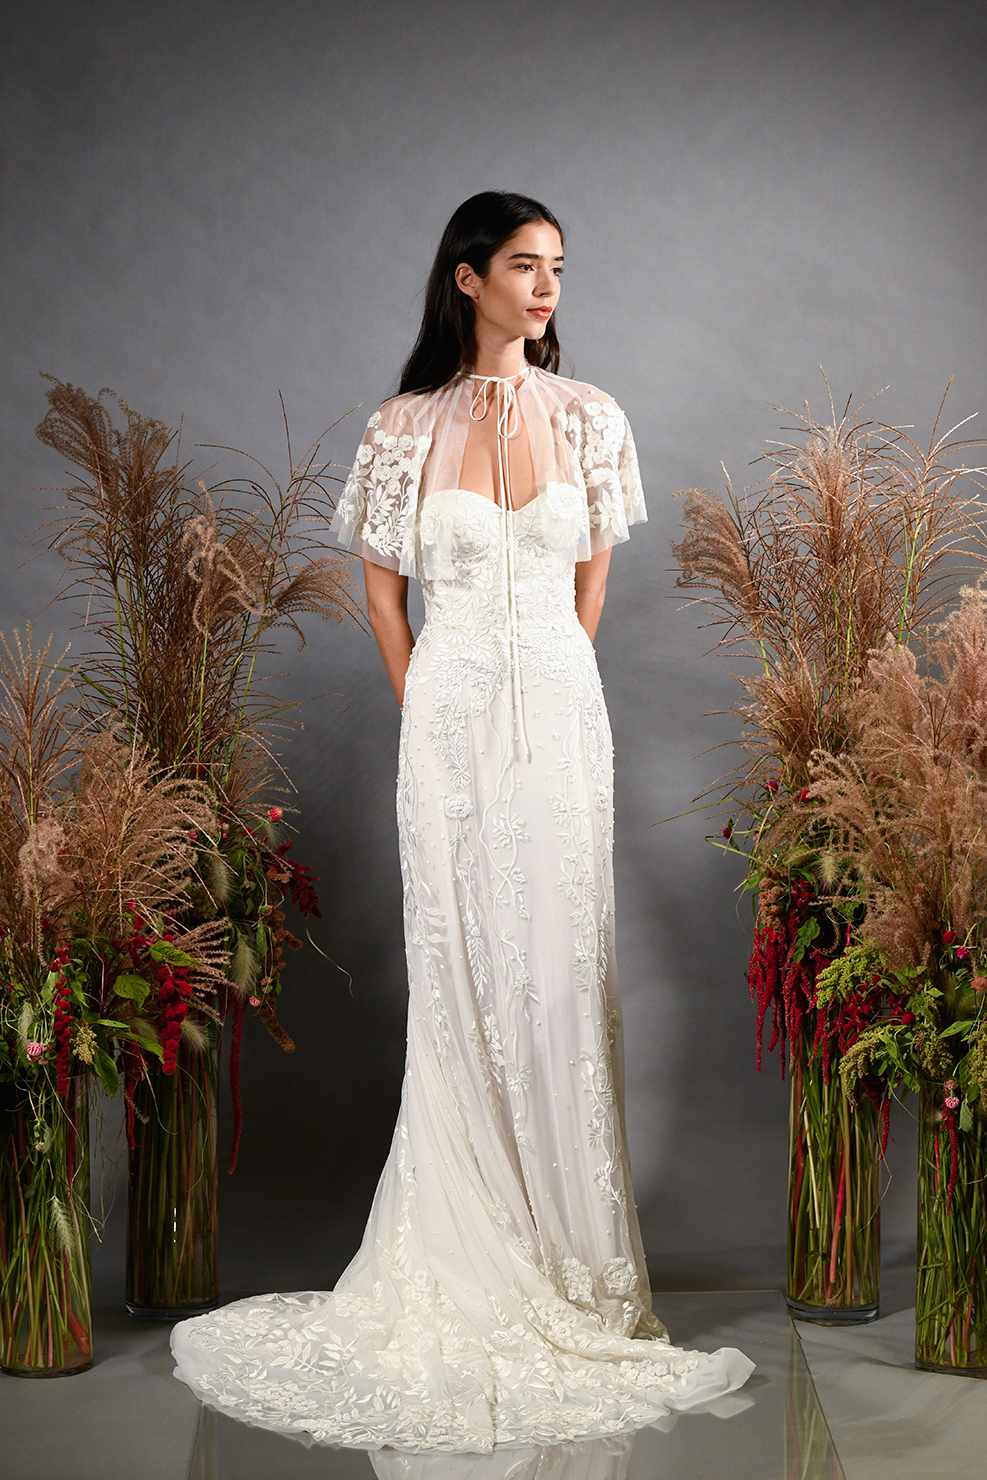 Model in strapless wedding dress with capelet